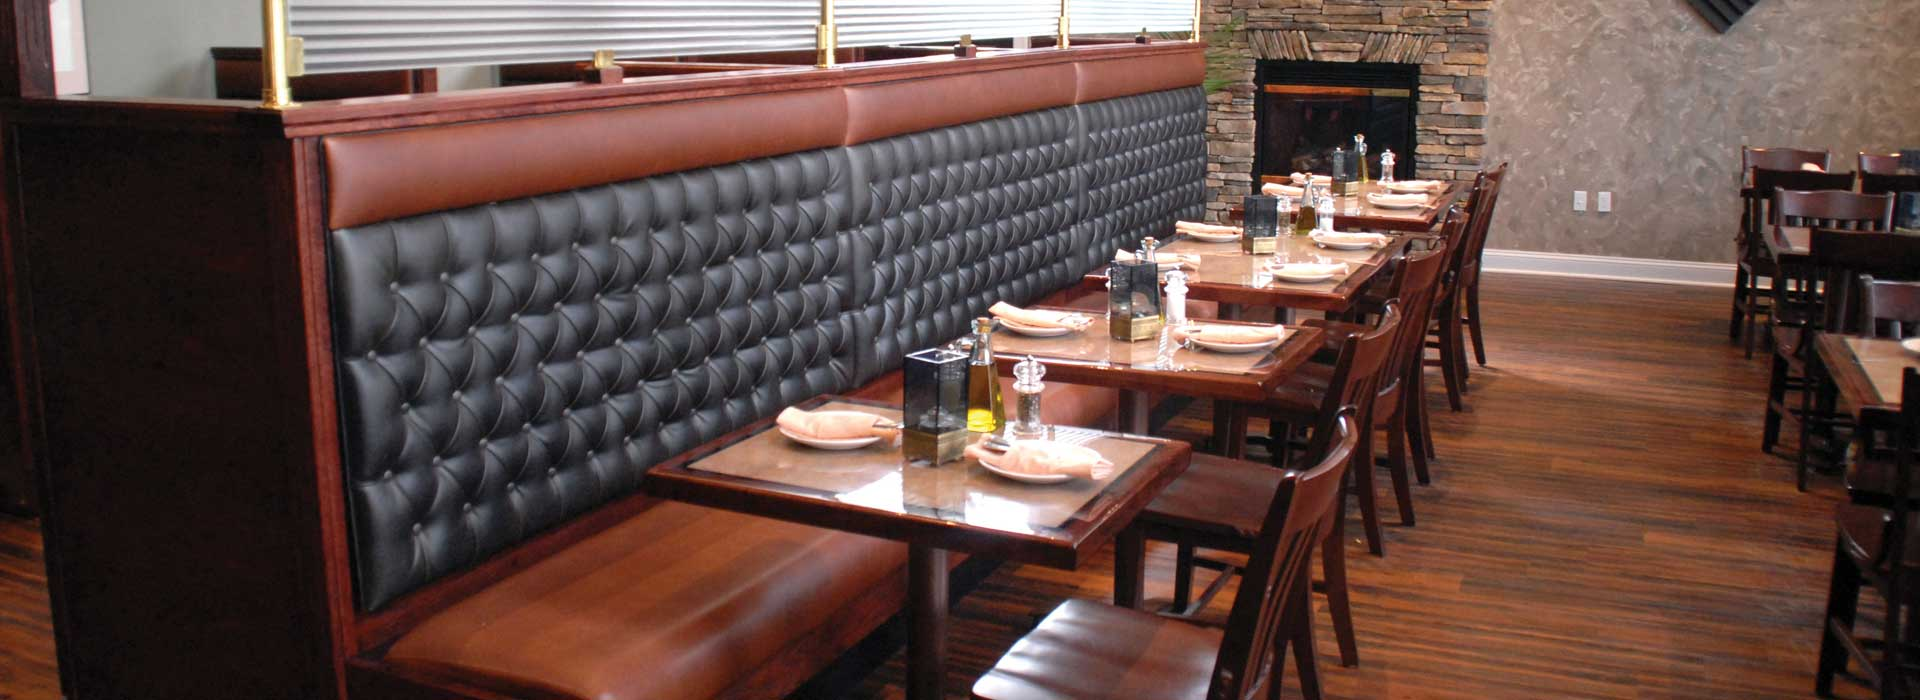 Restaurant Chairs And Tables New England Seating Restaurant Booths The Best In Restaurant